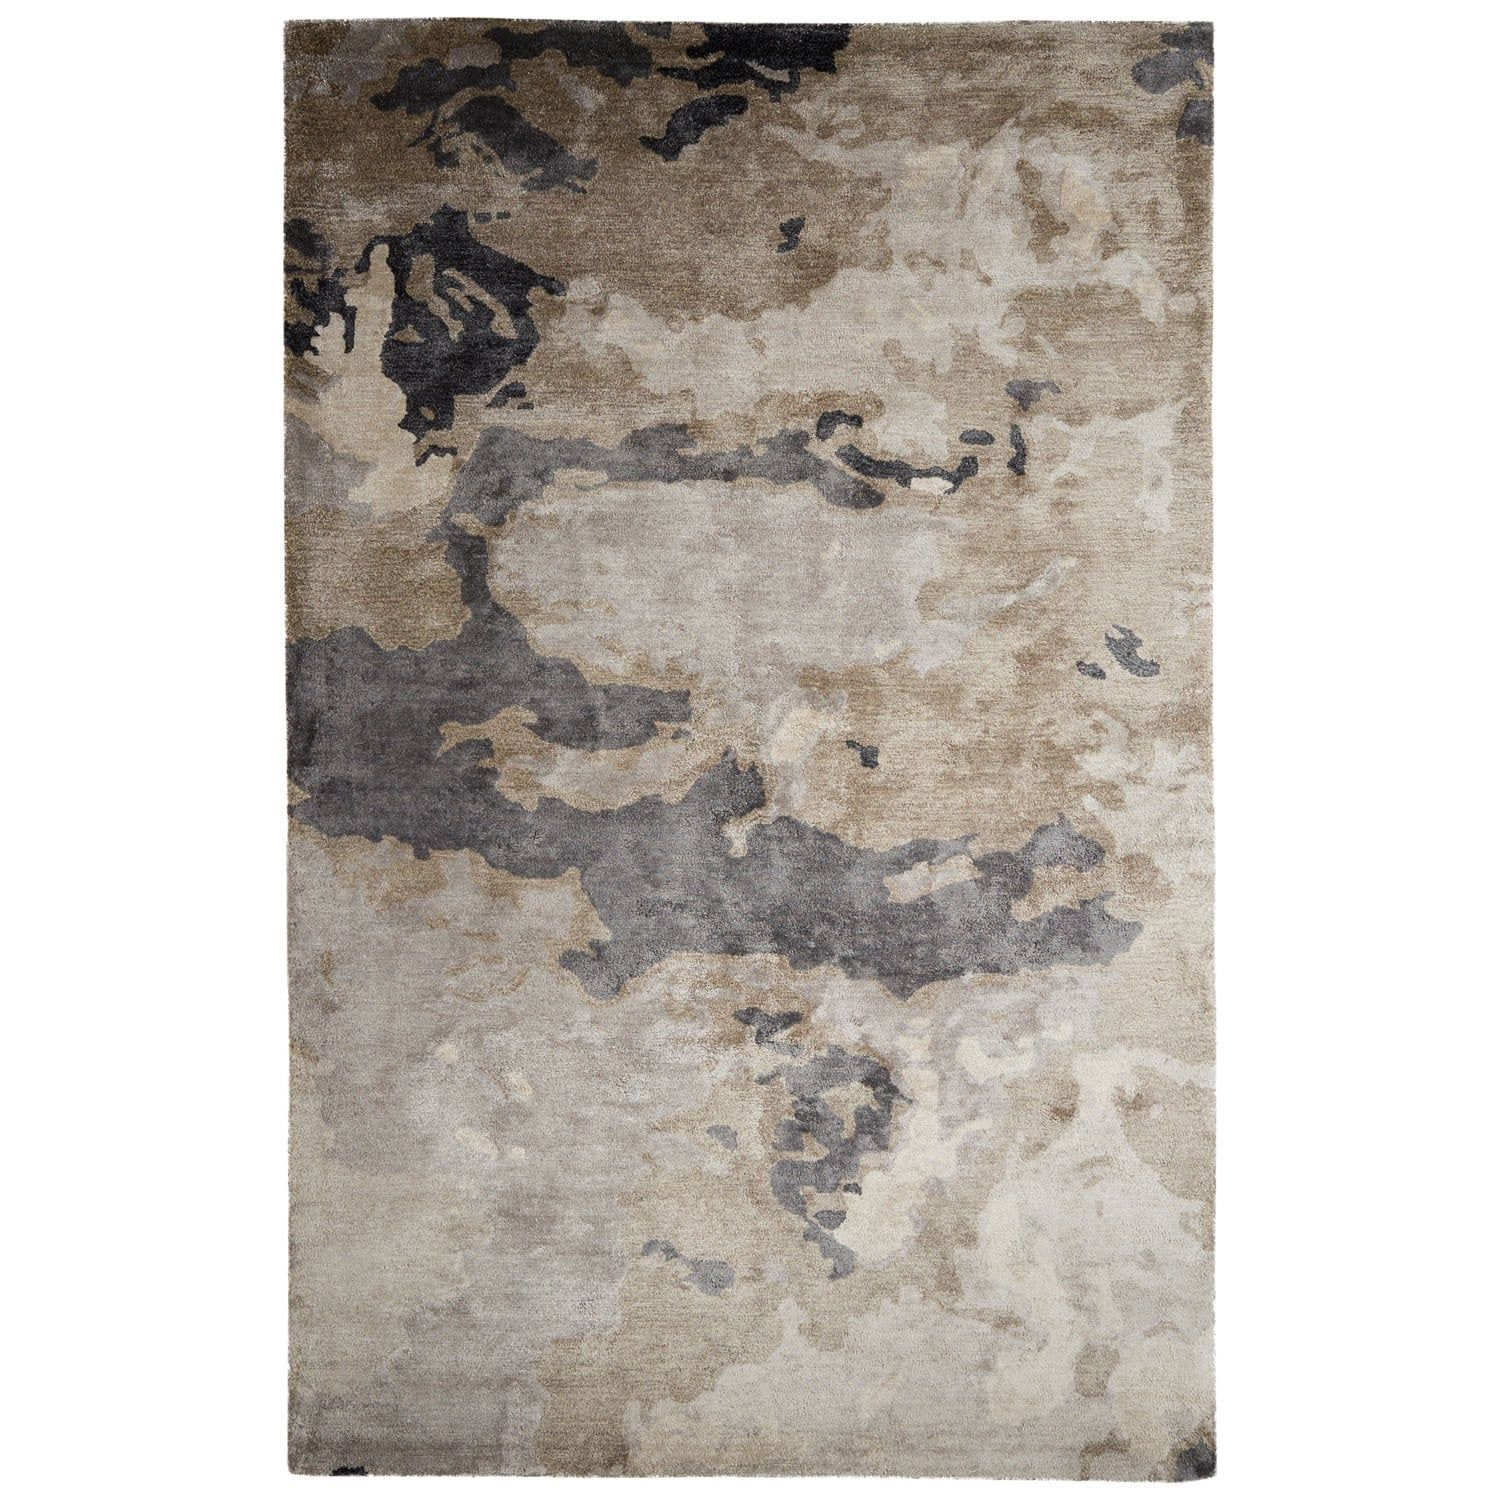 Mudra Handmade Abstract Gray/ Silver Area Rug (9' x 12') - Free Shipping Today - Overstock.com - 18353977